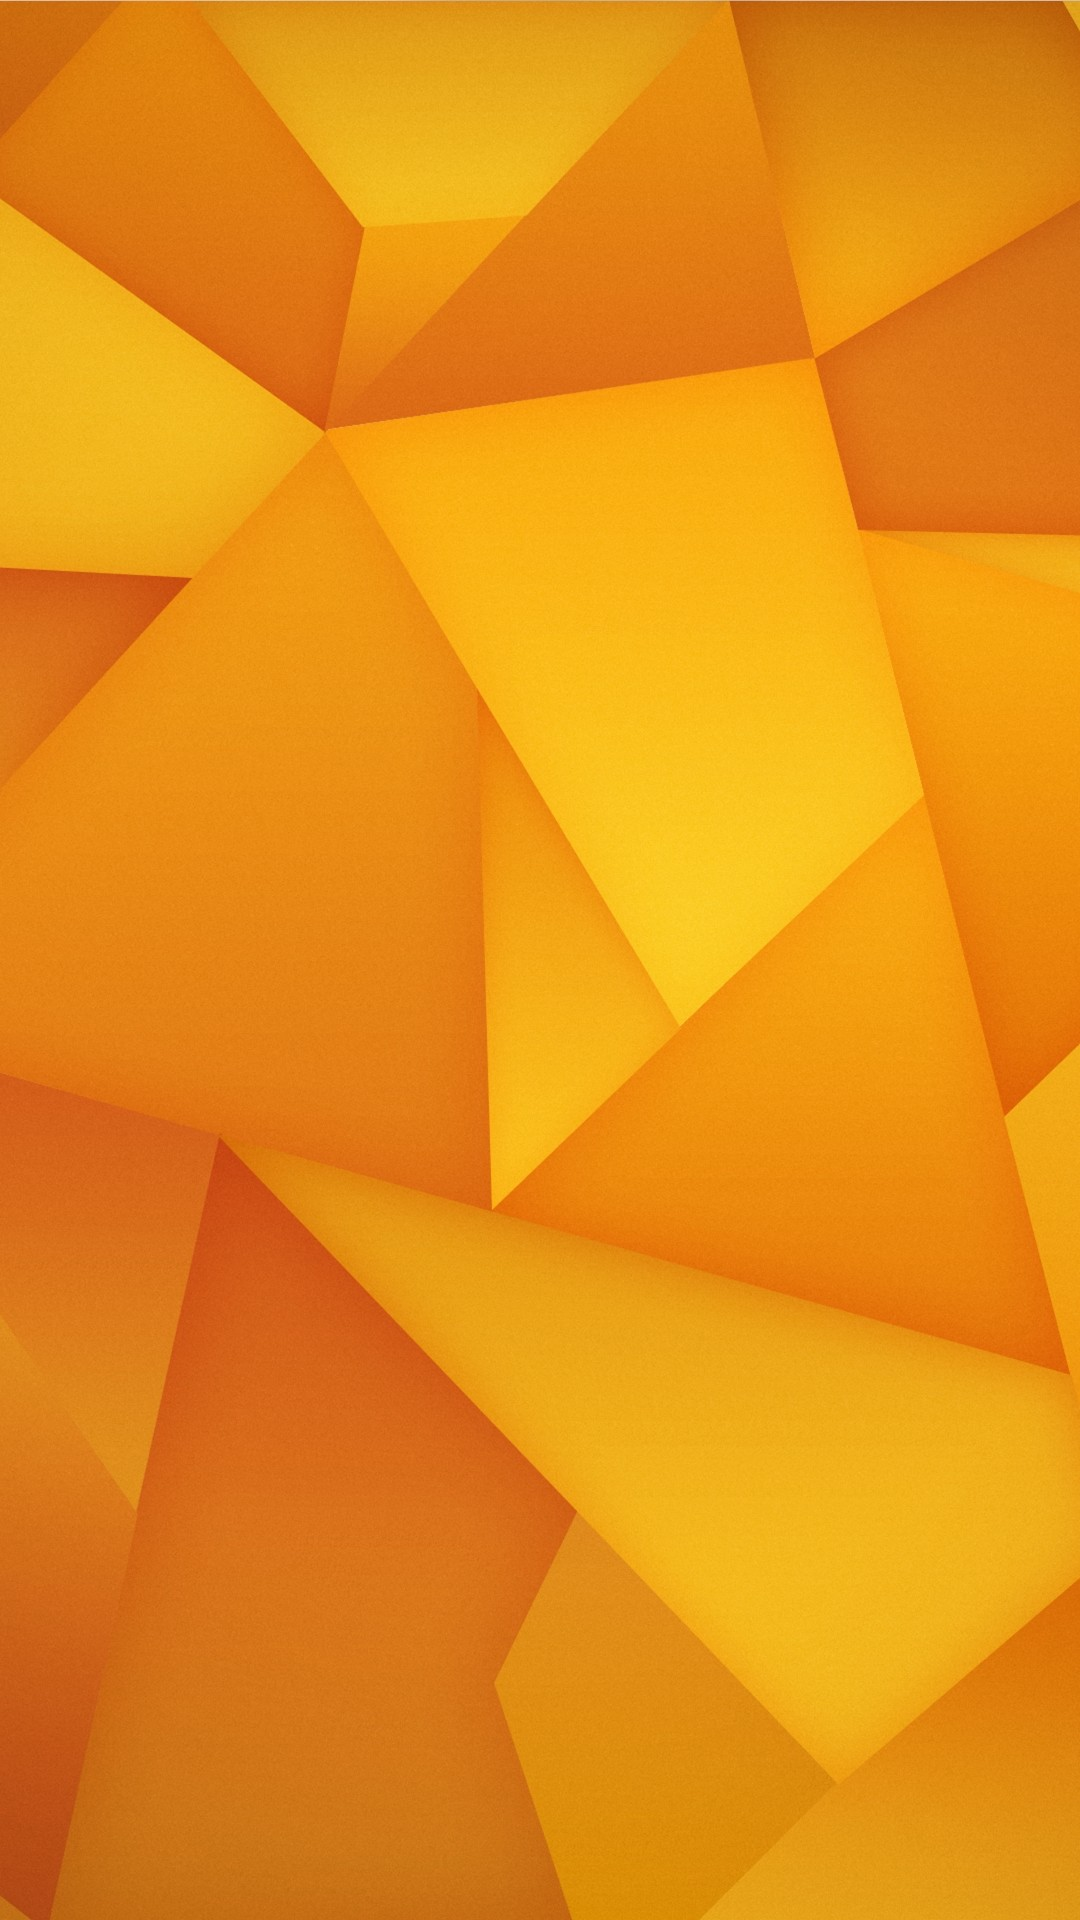 Yellow iphone 6s plus wallpaper